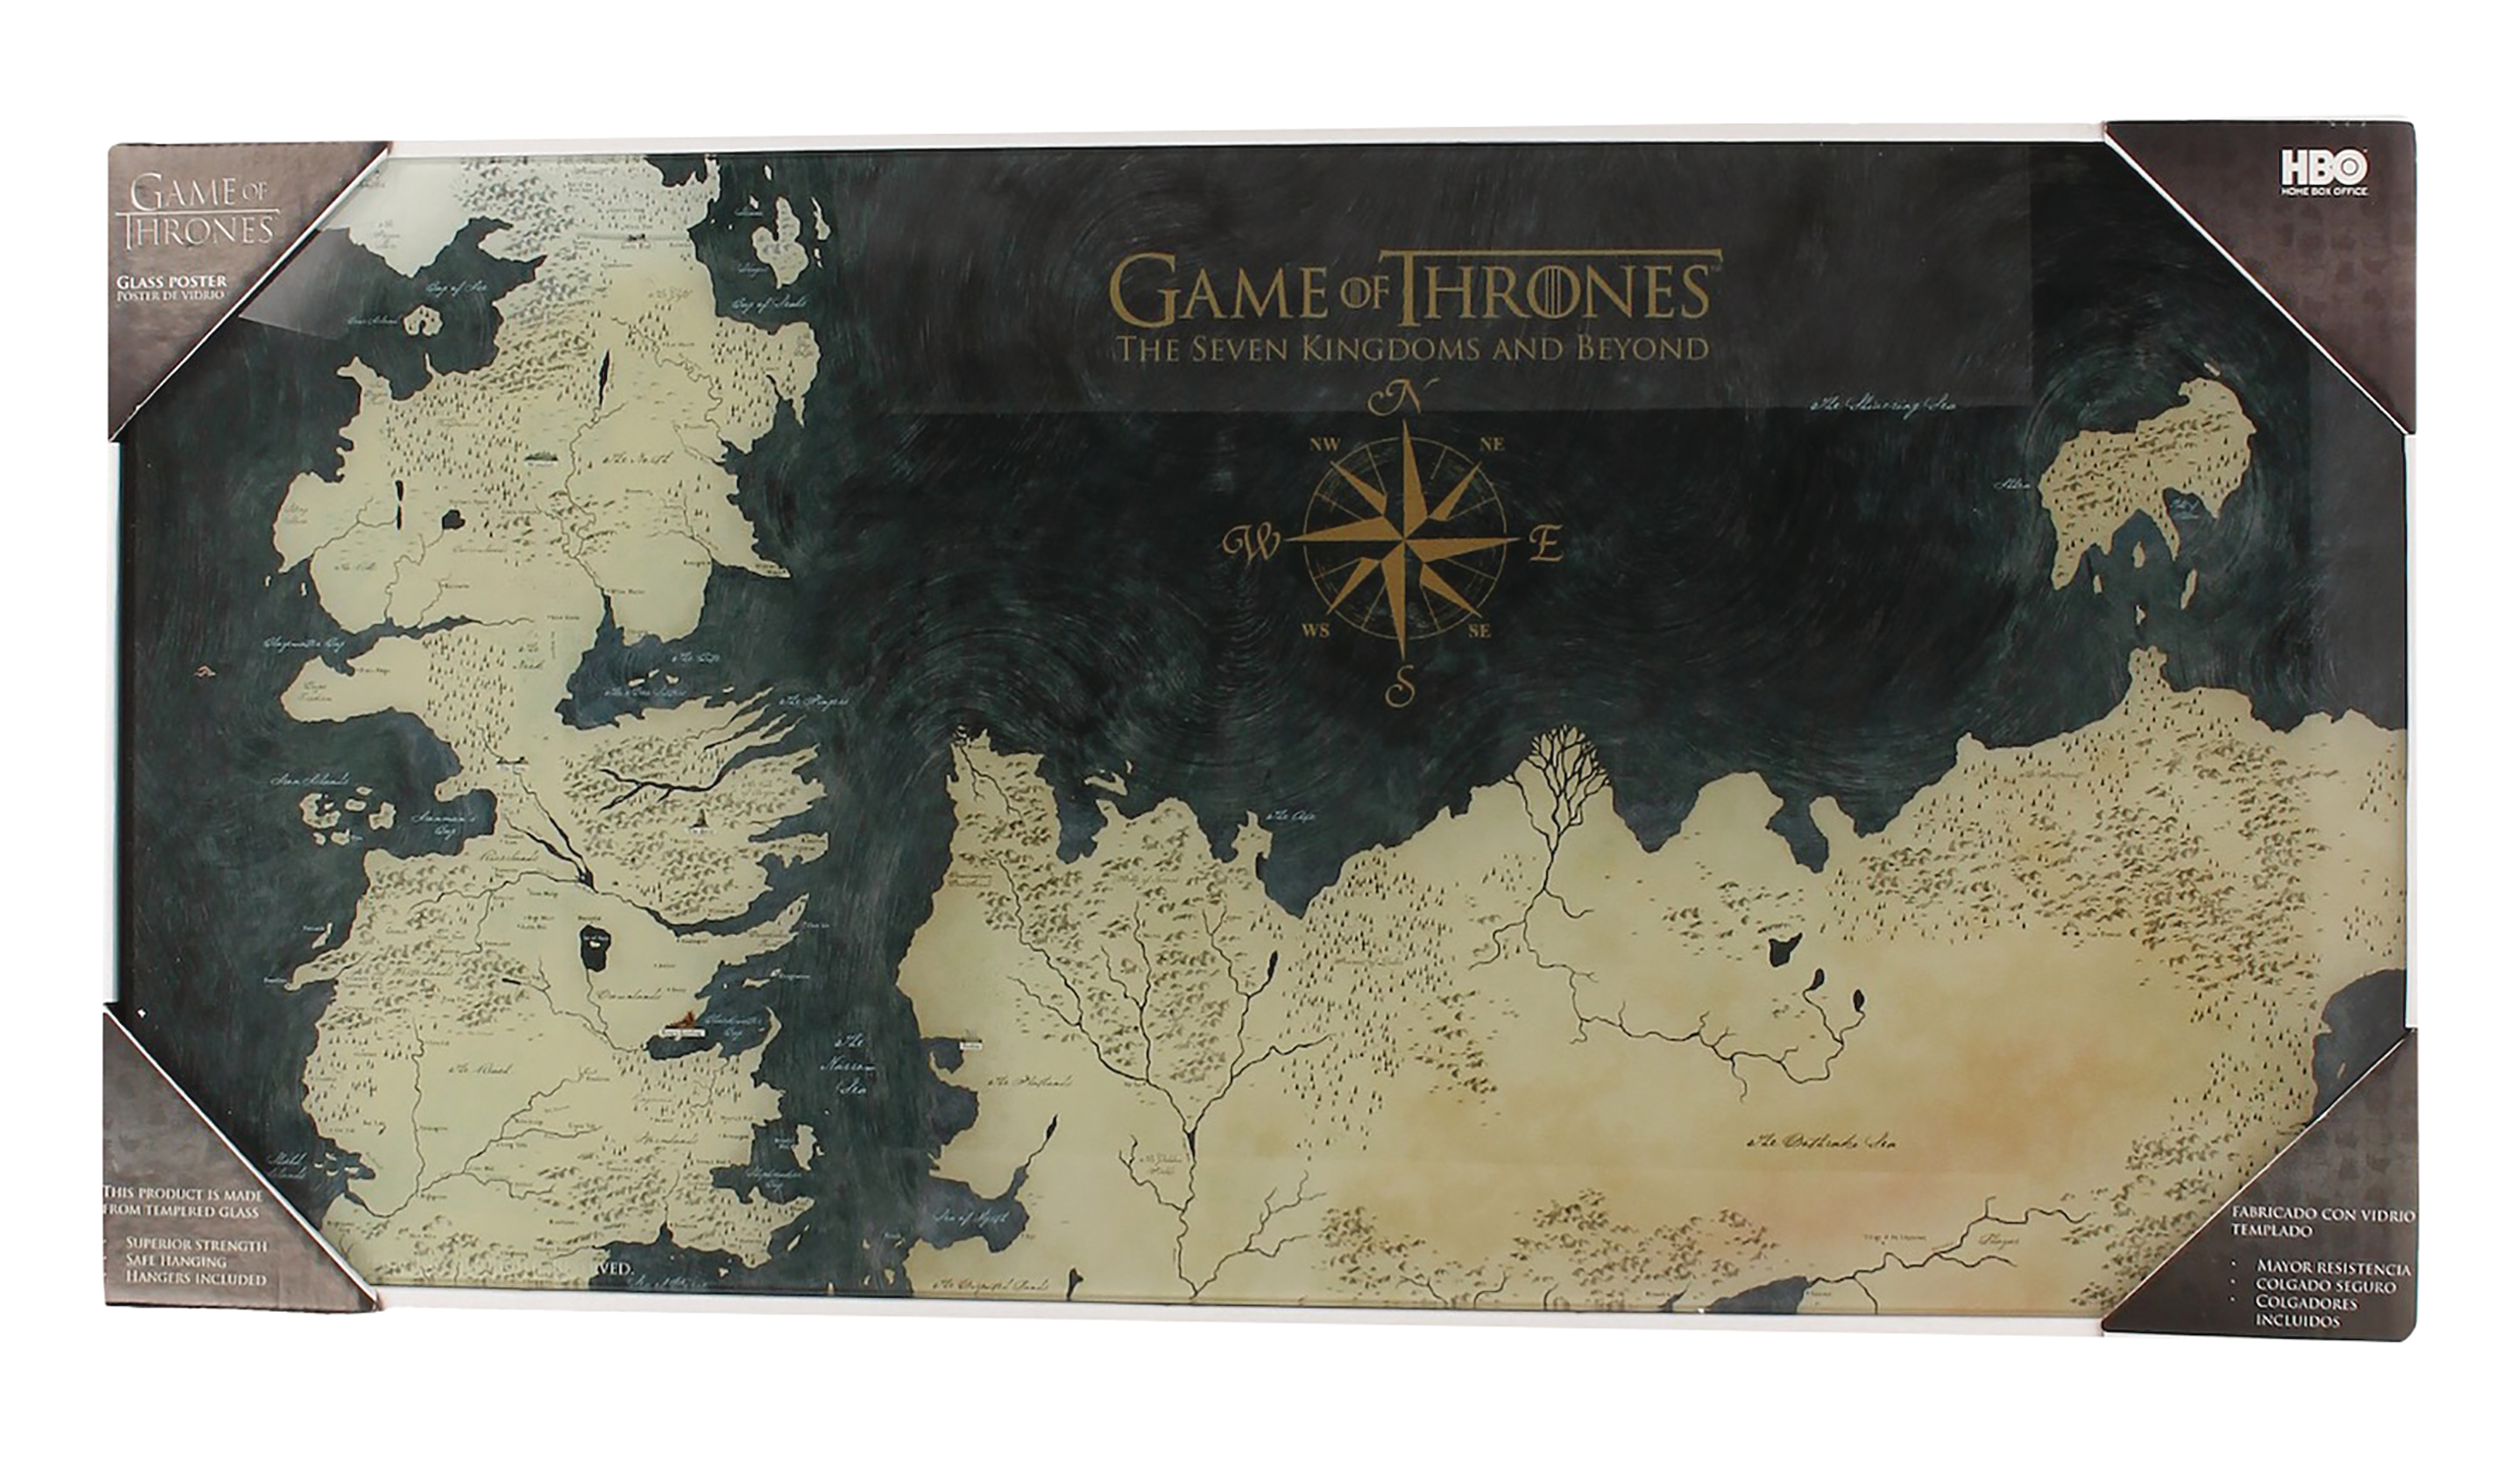 DEC188924 - GAME OF THRONES WESTEROS MAP TEMPERED GL ... on game of thrones map print, game of thrones world map printable, game of thrones subway map, game of thrones map wallpaper, game of thrones detailed map, game of thrones map of continents, game of thrones astapor map, harrenhal game of thrones map, game of thrones essos map, game of thrones map clans, game of thrones map labeled, the citadel game of thrones map, crown of thrones map, game of thrones ireland map, game of thrones map poster, from game of thrones map, game of thrones map the south, westeros cities map, game of thrones map official,